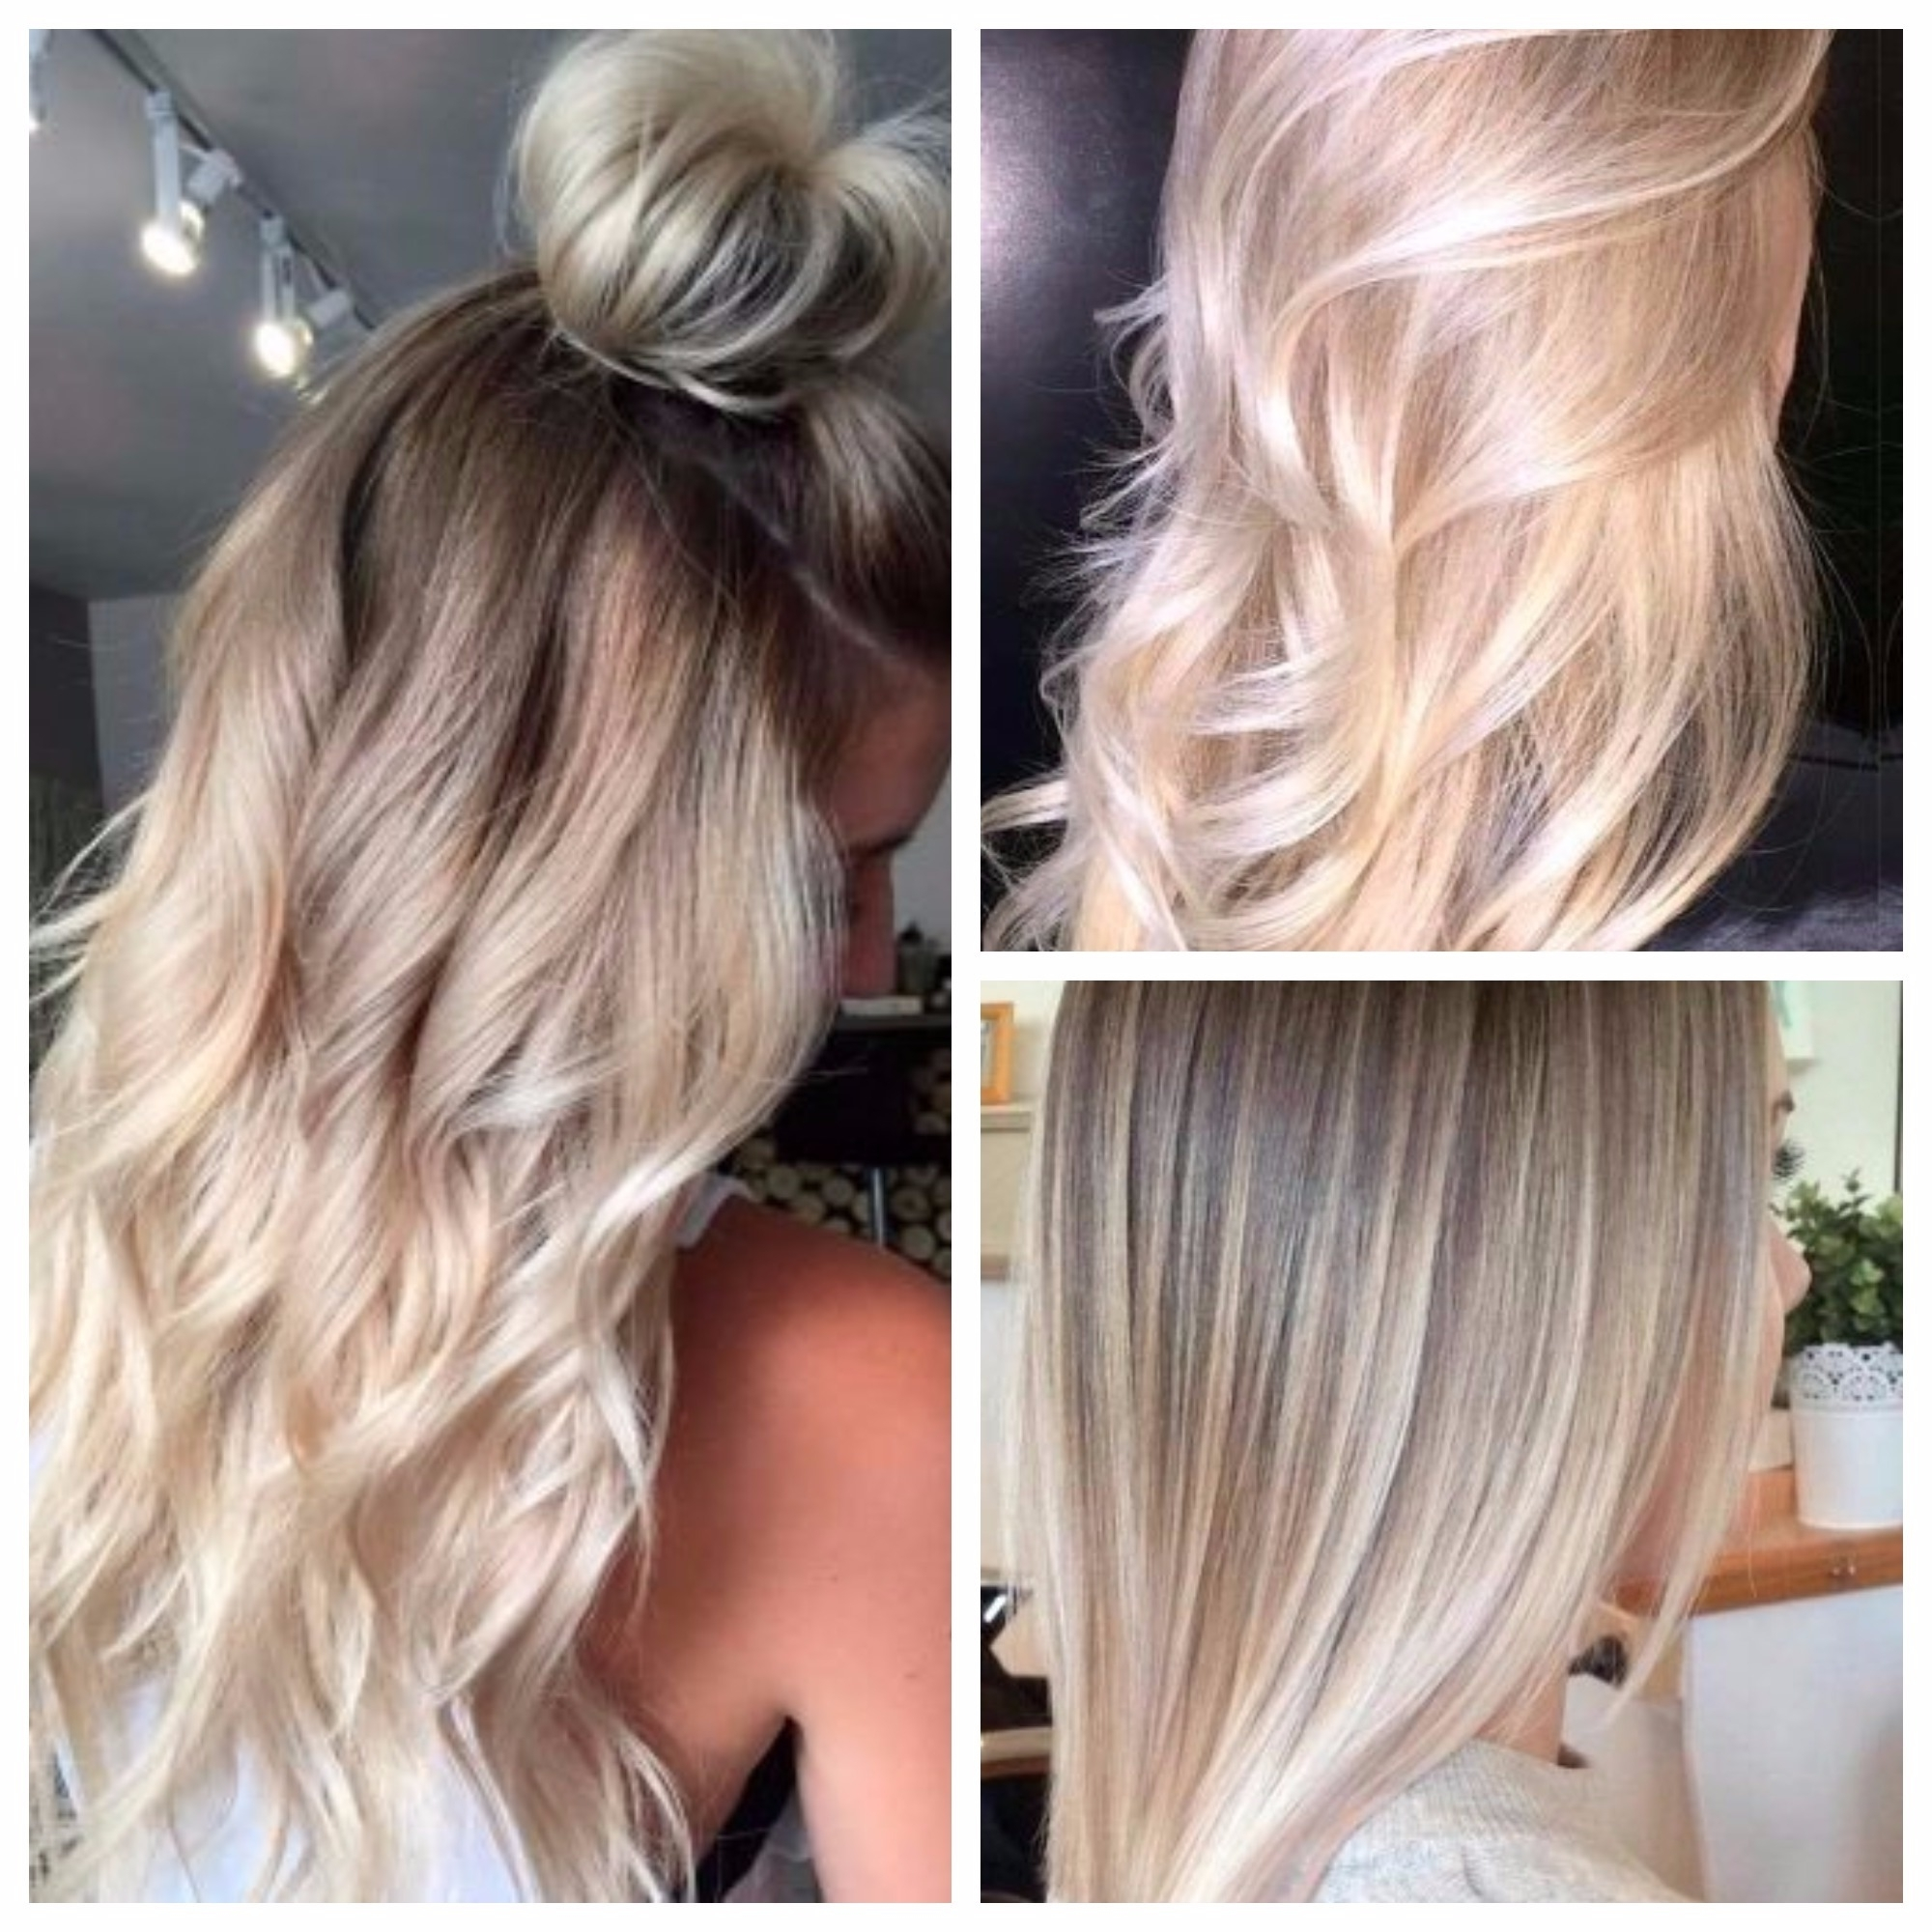 Most Popular Icy Highlights And Loose Curls Blonde Hairstyles For Blonde Ombre Hair Colors You Should Try – Hair World Magazine (View 13 of 20)